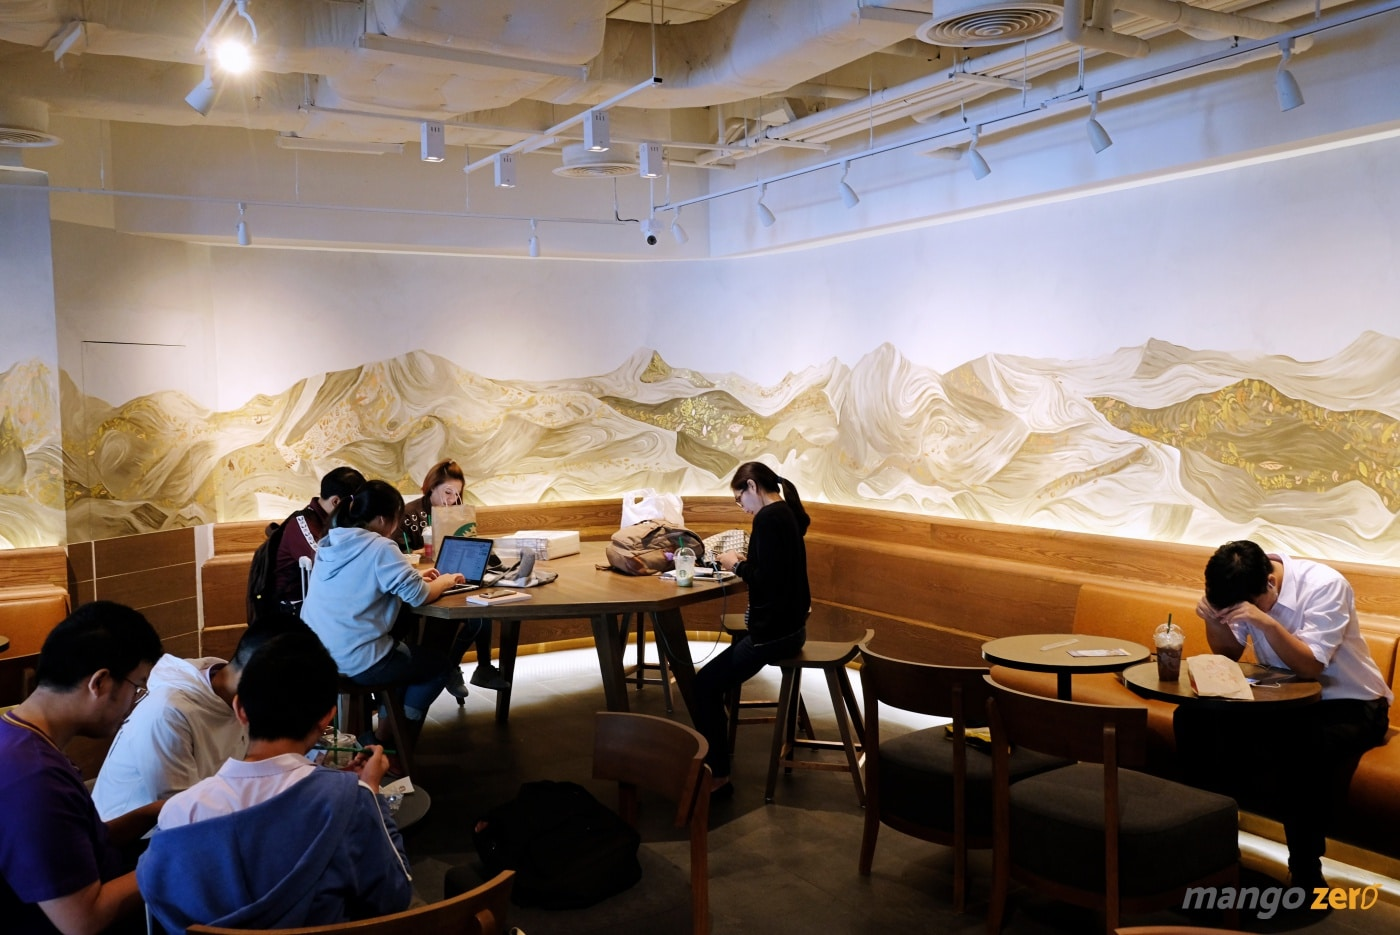 review-the-largest-starbucks-in-thailand-4